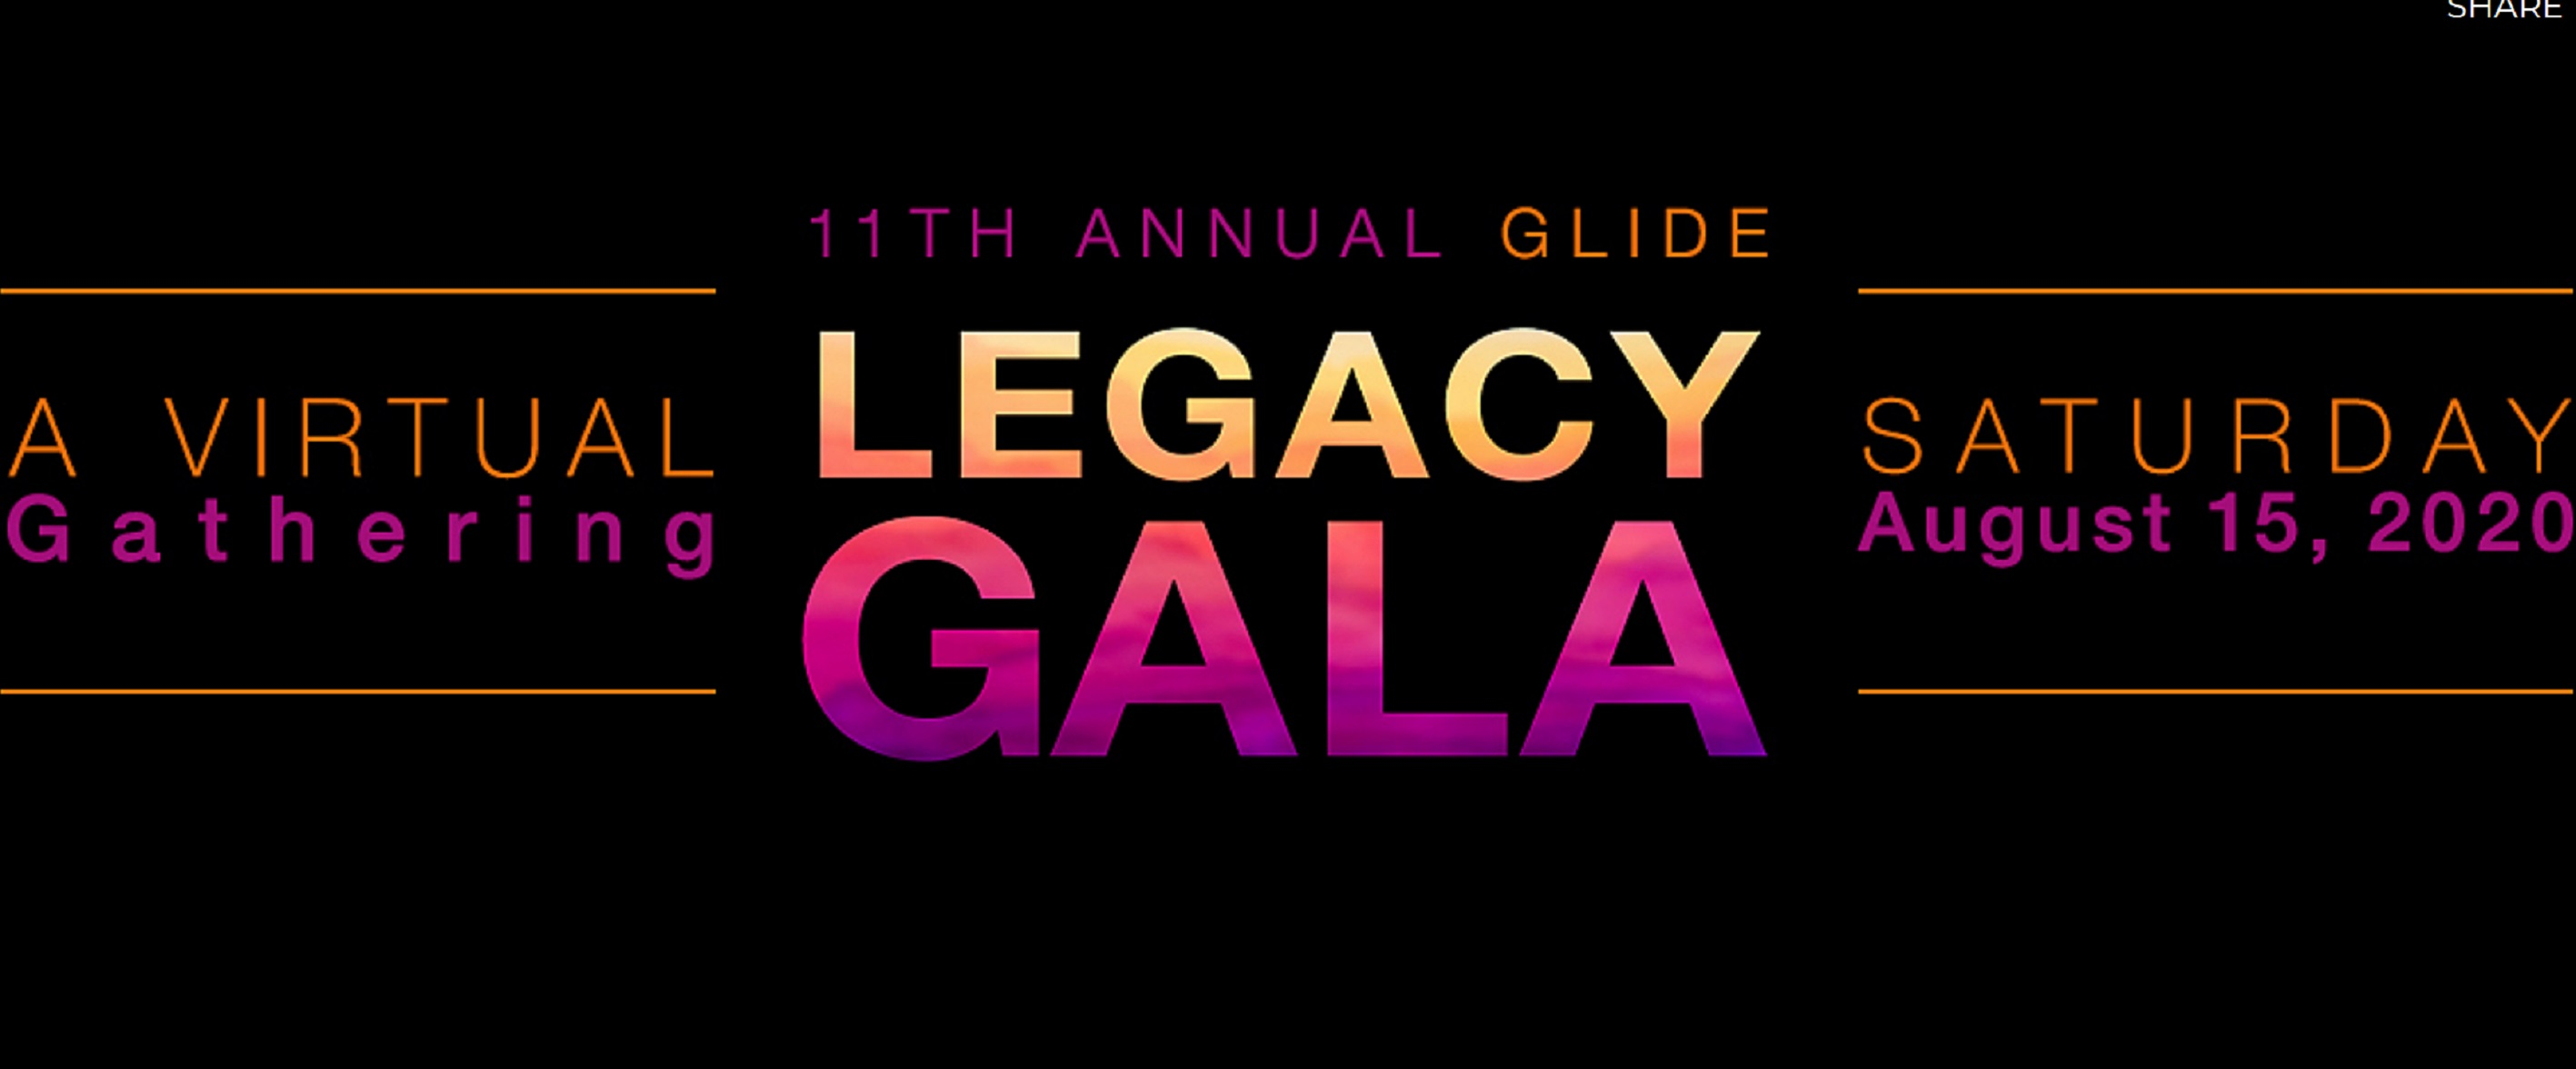 Michael Franti & 1st National Youth Poet Laureate Amanda Gorman Honored @ 11th Annual GLIDE Legacy Gala